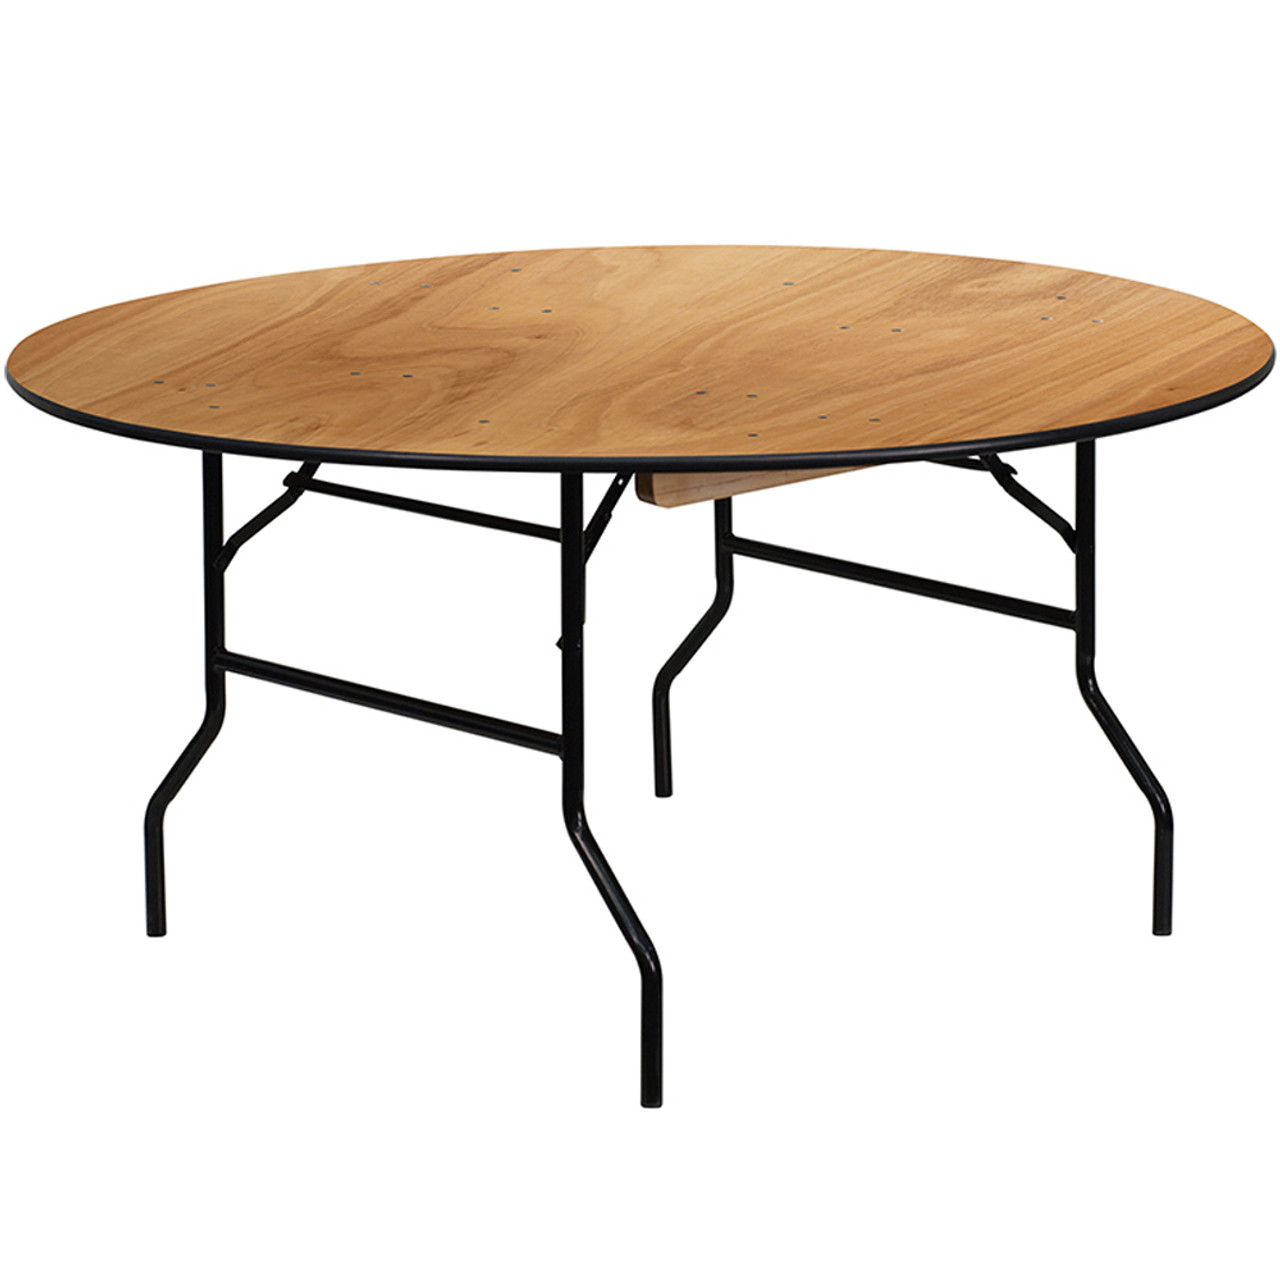 10 Pack 60 Inch 5 Ft Round Wood Folding Banquet Tables 10 Yt Wrft60 Tbl Gg Round Wooden Banquet Tables